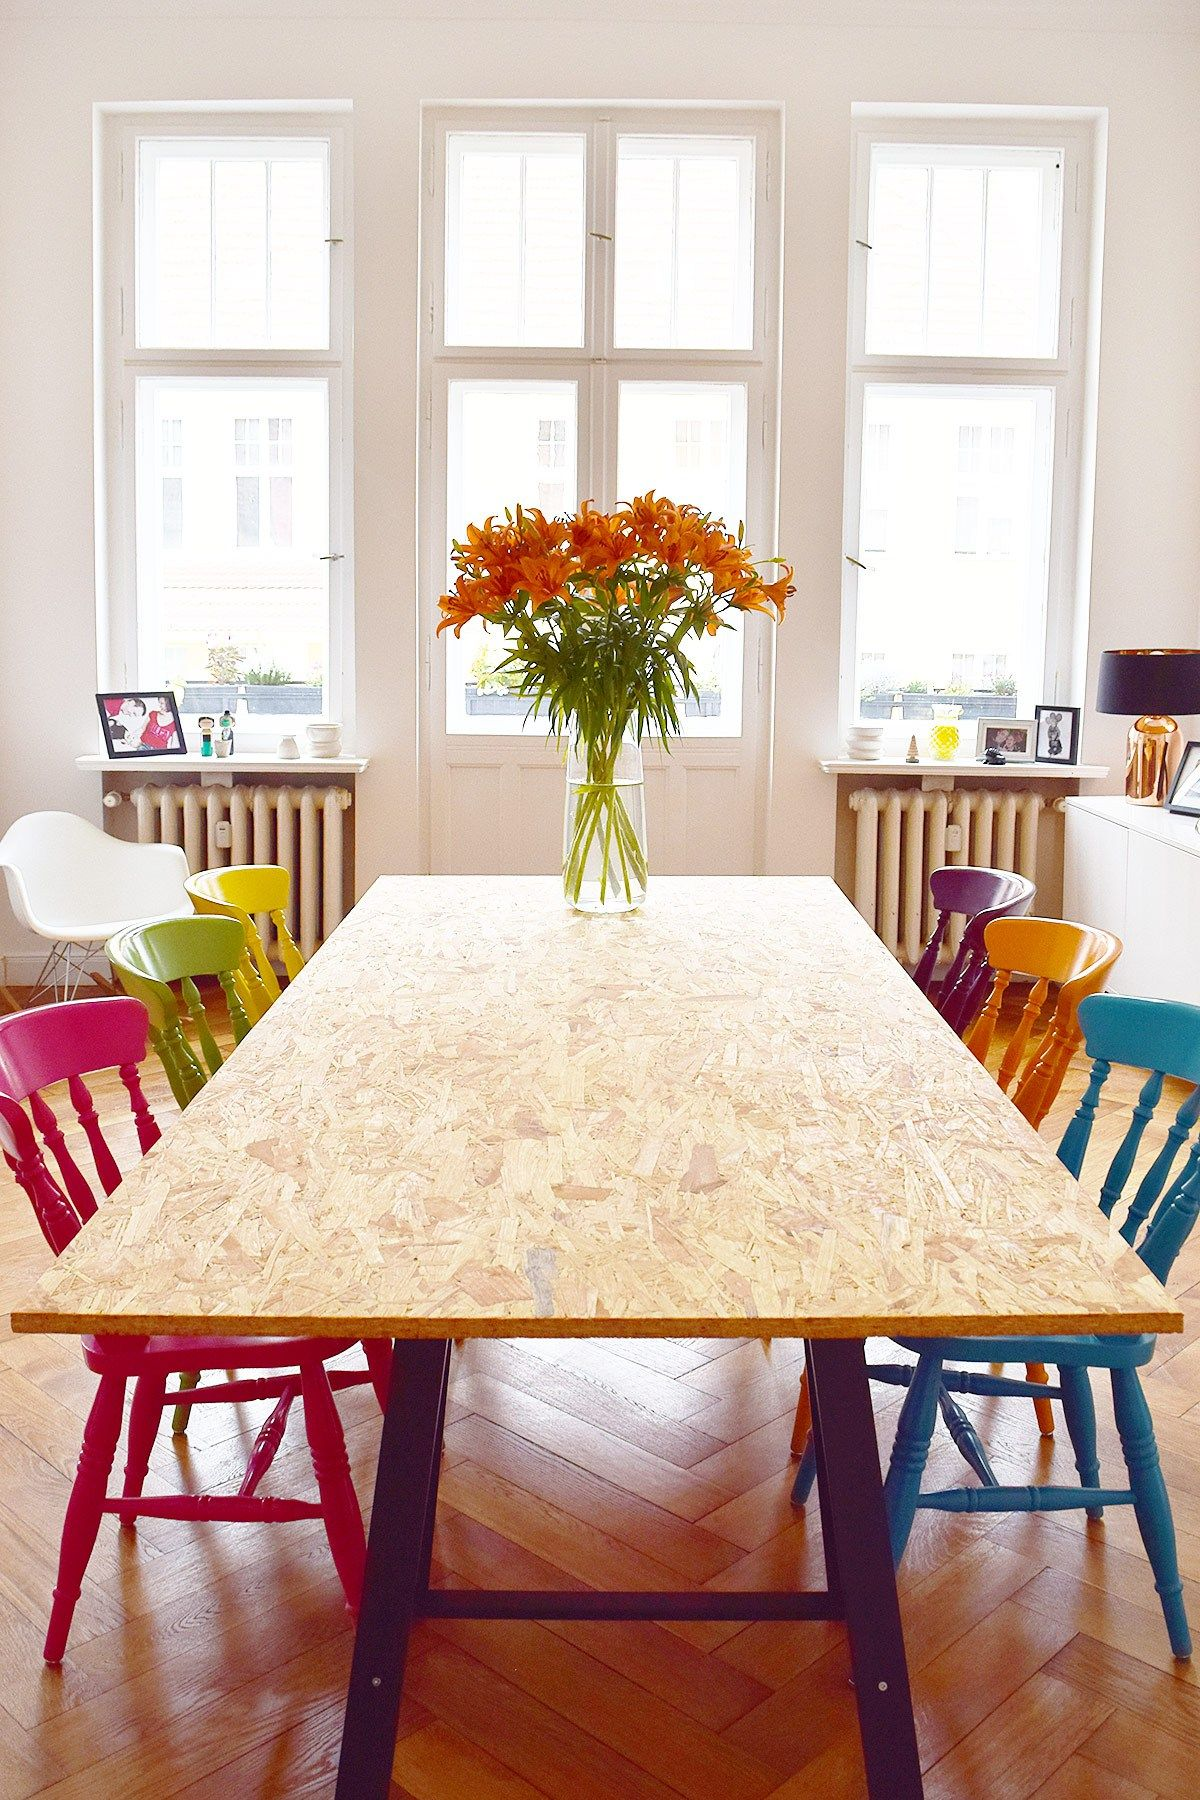 Diy Dining Table With Osb Board Little House On The Corner